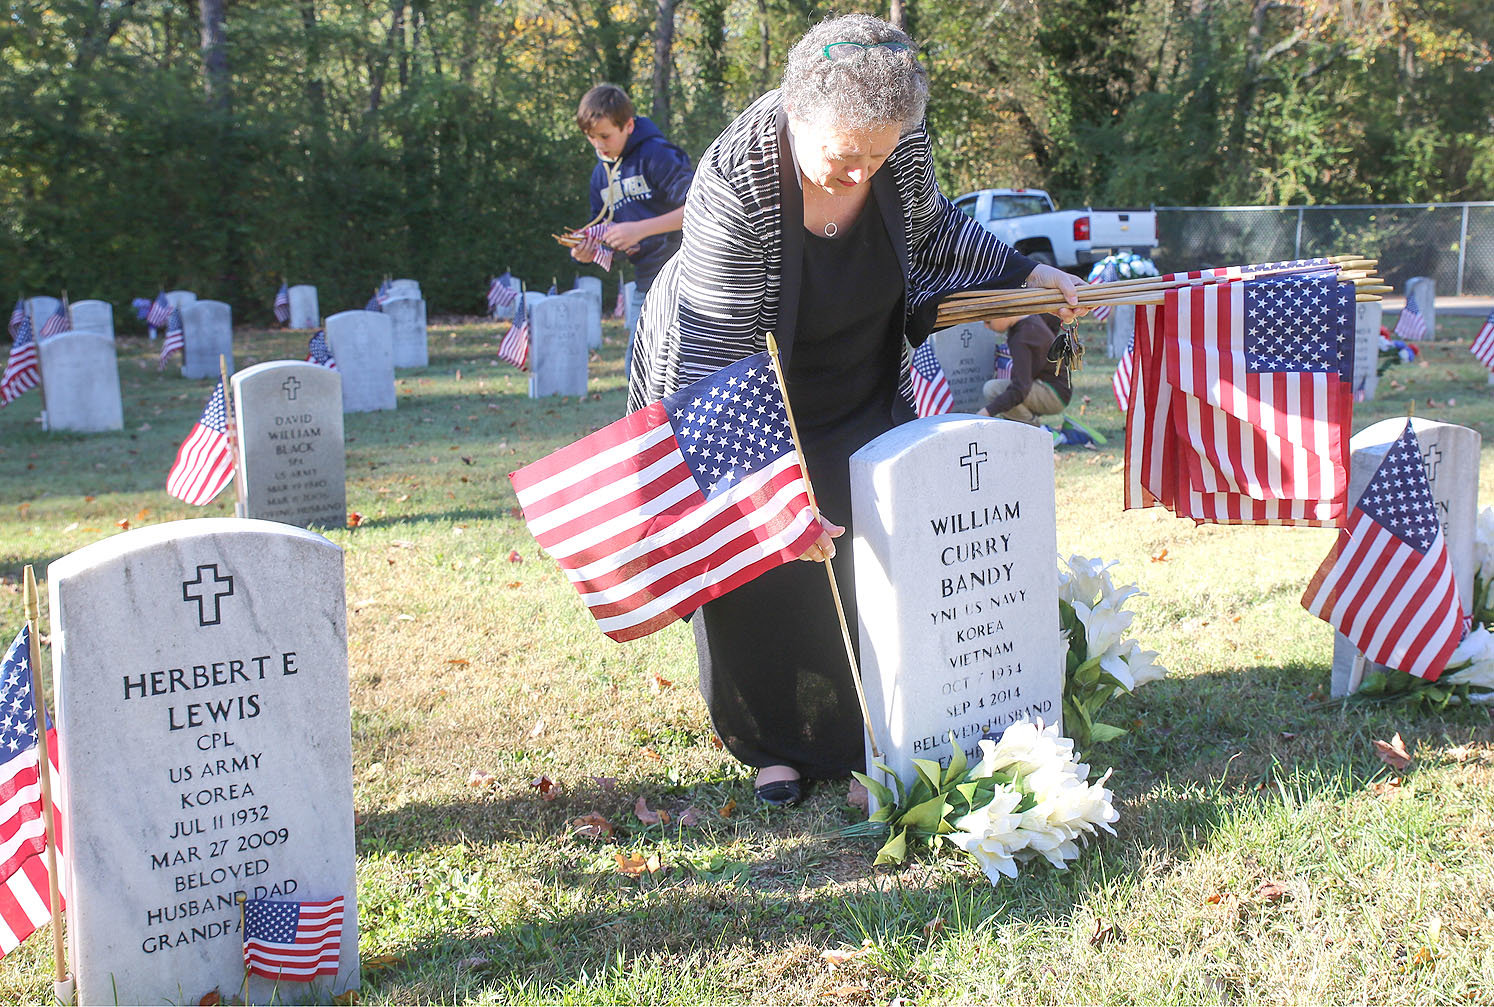 ANITA GREEN places a flag beside a headstone at the Fort Hill Veterans Cemetery. She was one of many local volunteers who worked with AmVets and local veteran organizations to decorate the local Veterans Cemetery in advance of Veterans Day.